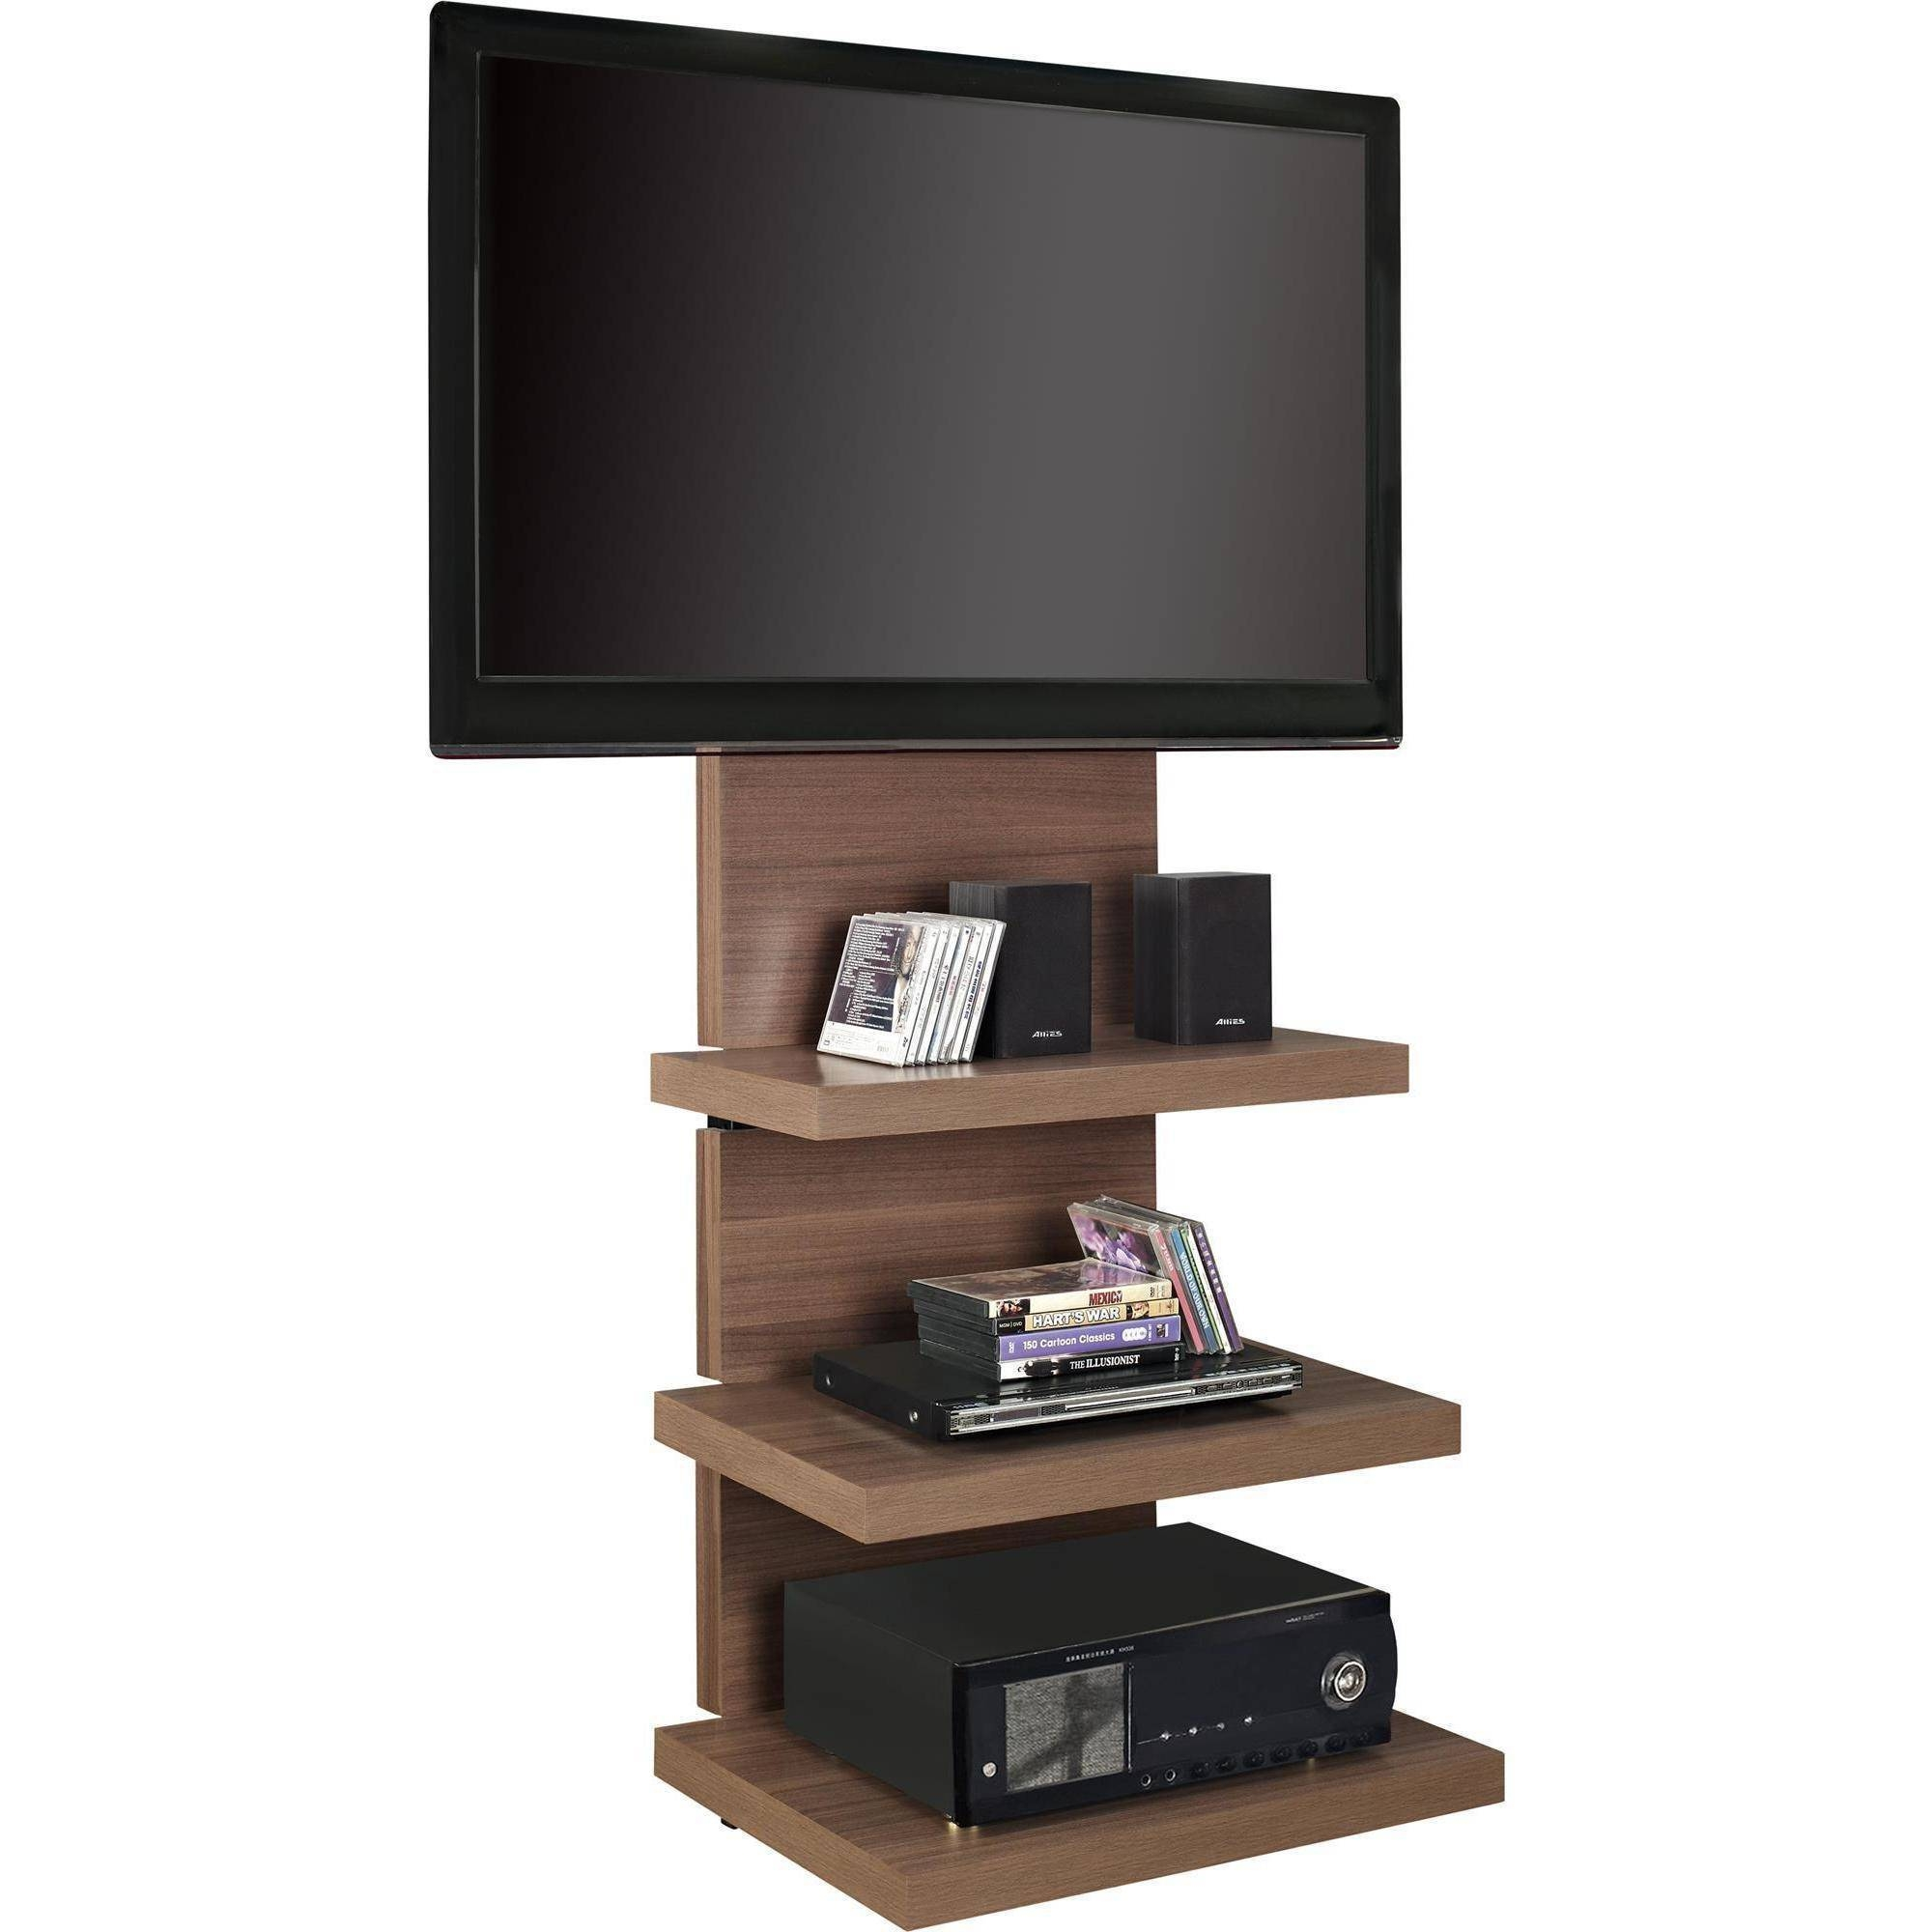 Ameriwood Home Elevation Altramount Tv Stand For Tvs Up To 60 Regarding Tv Stands For 43 Inch Tv (View 13 of 15)